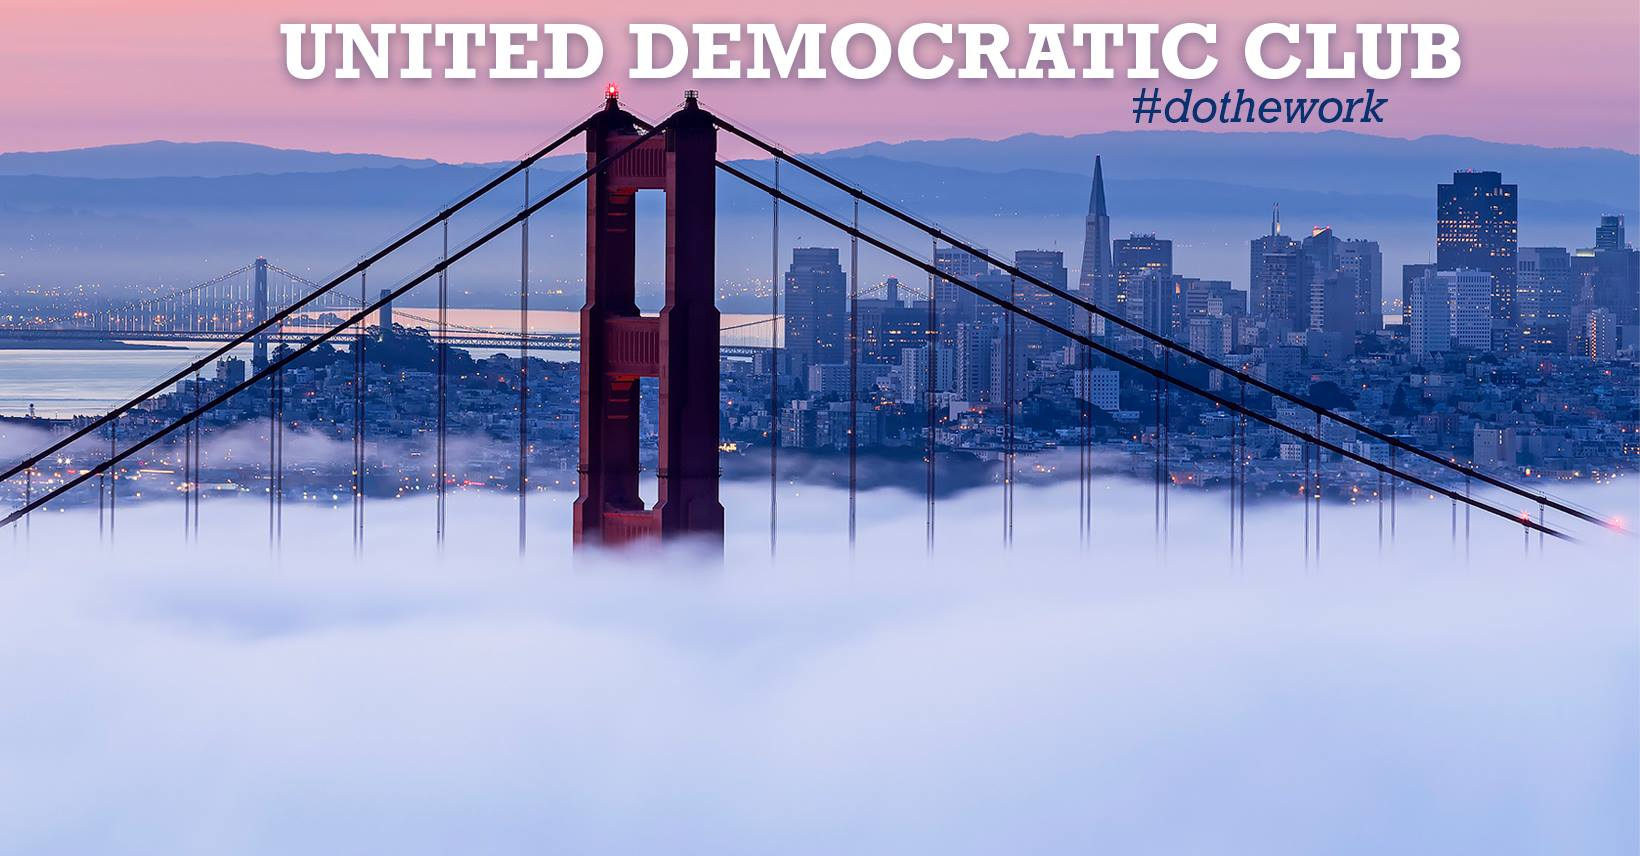 Welcome to the United Democratic Club